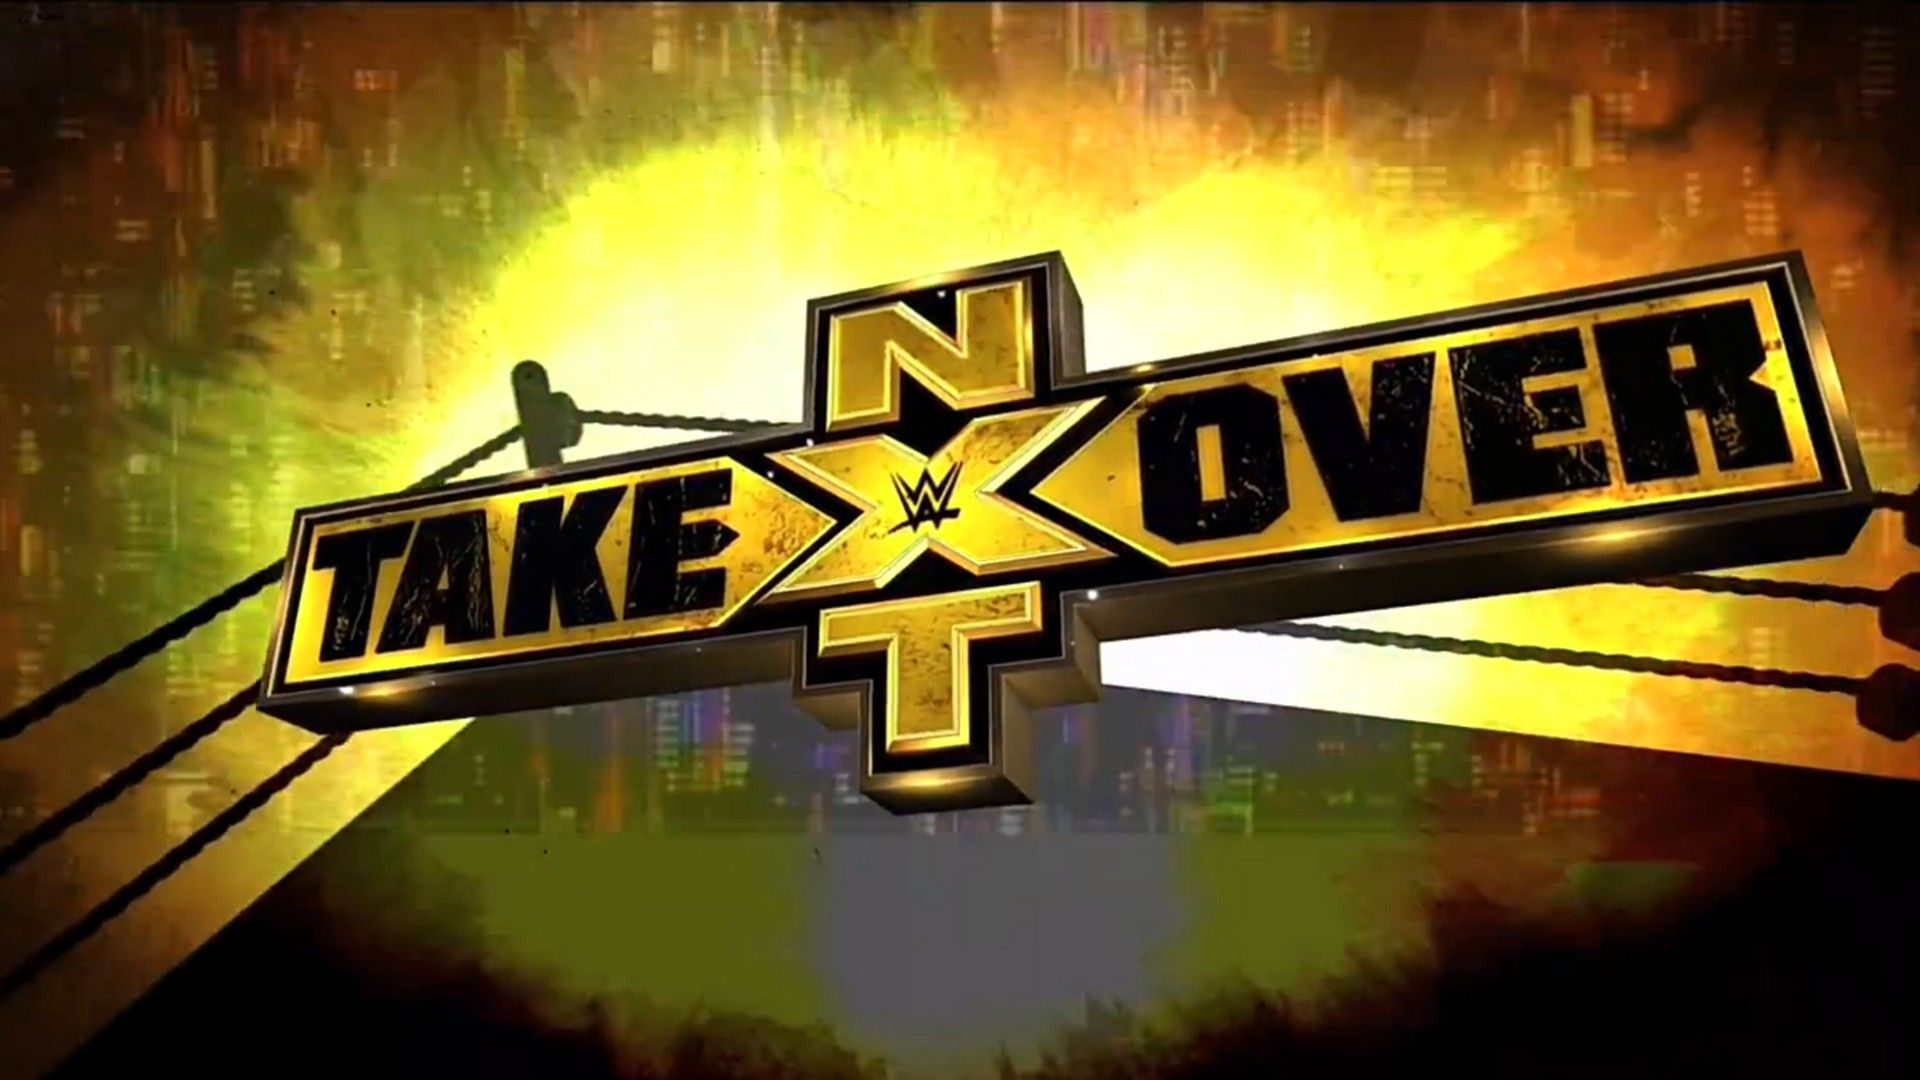 NXT Takeover Wallpaper HD Nxt takeover, Wwe, Best